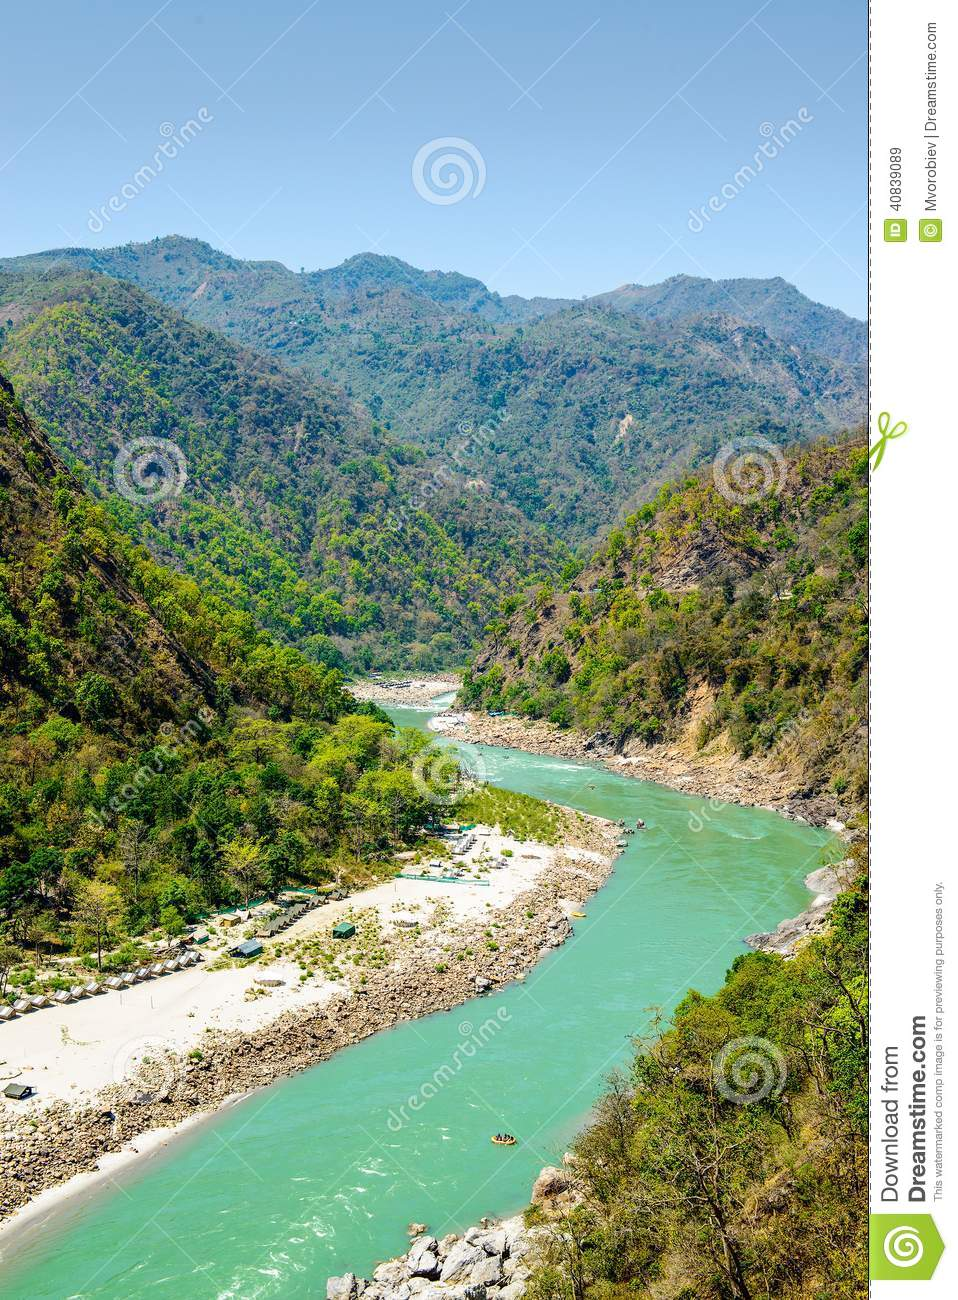 Holy Ganges River Flows In A Valley, India Stock Photo ...